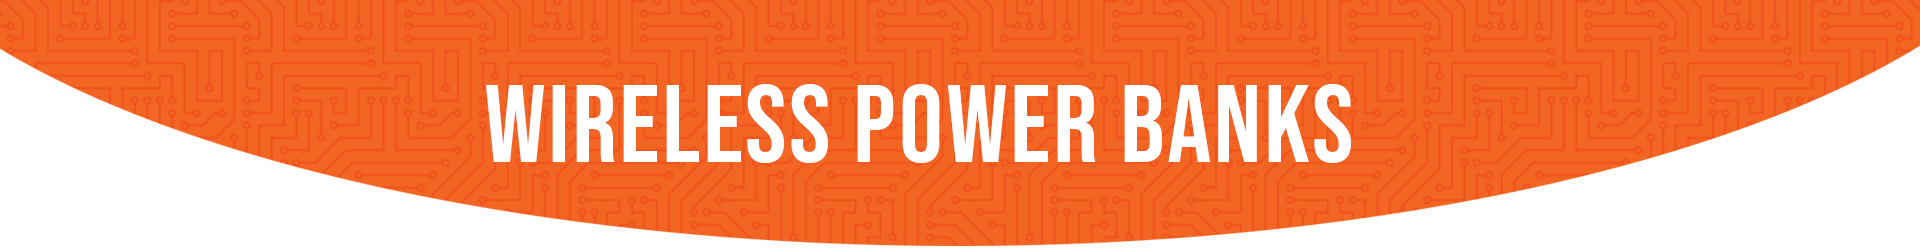 Wireless-Power-Banks---banner.png